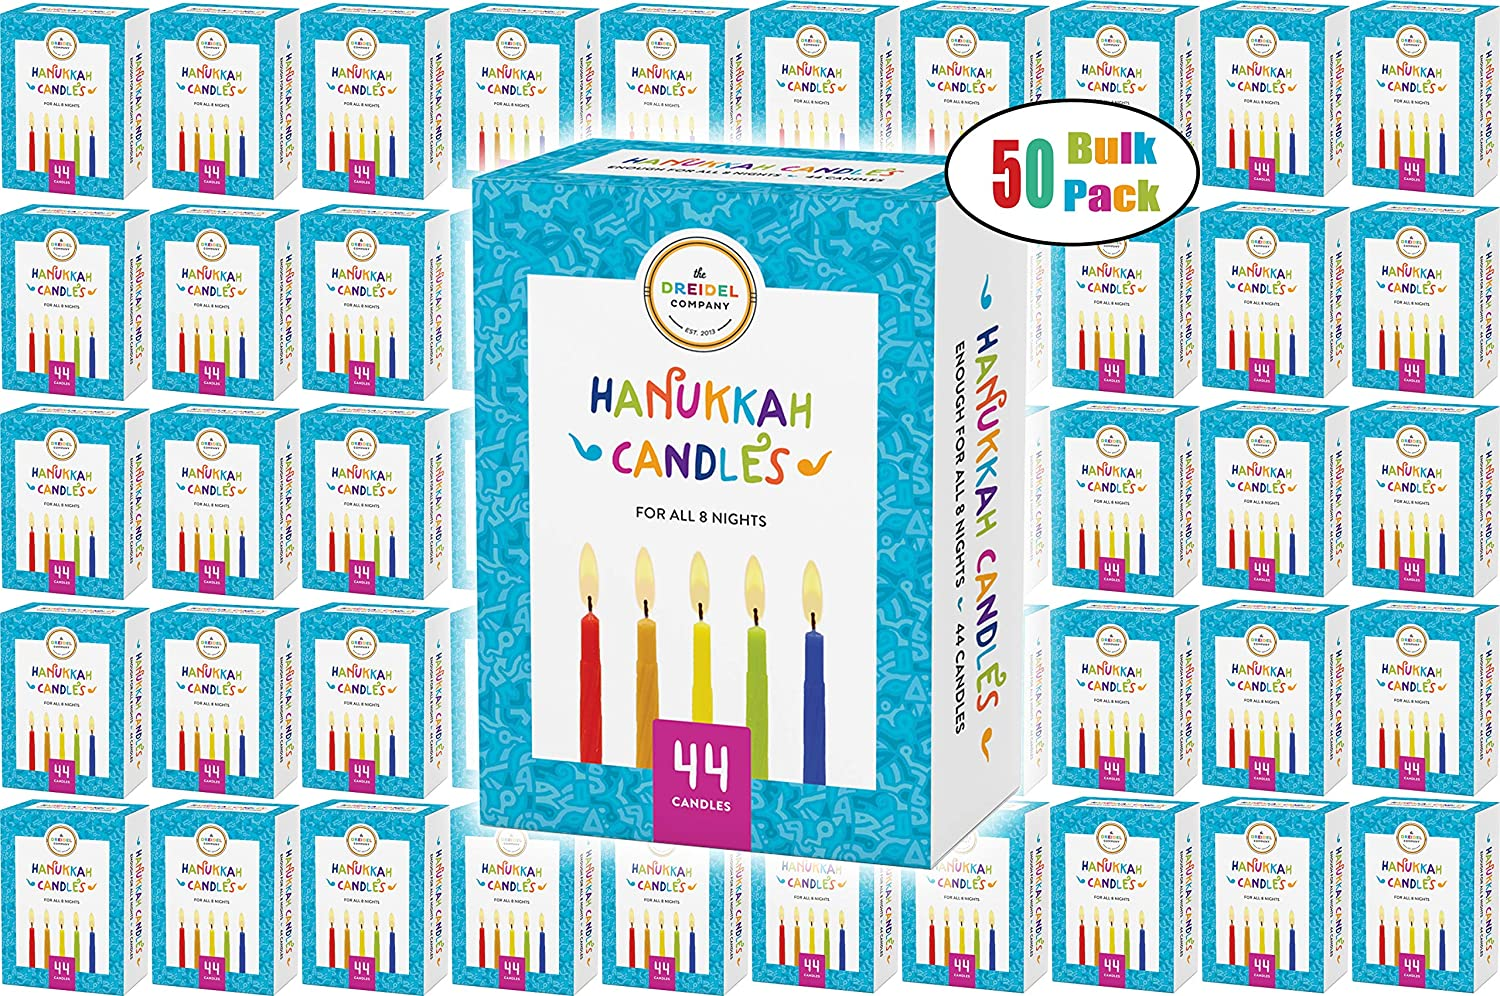 Menorah Candles Chanukah Candles 44 Colorful Hanukkah Candles For All 8 Nights of Chanukah The Dreidel Company 5-Pack